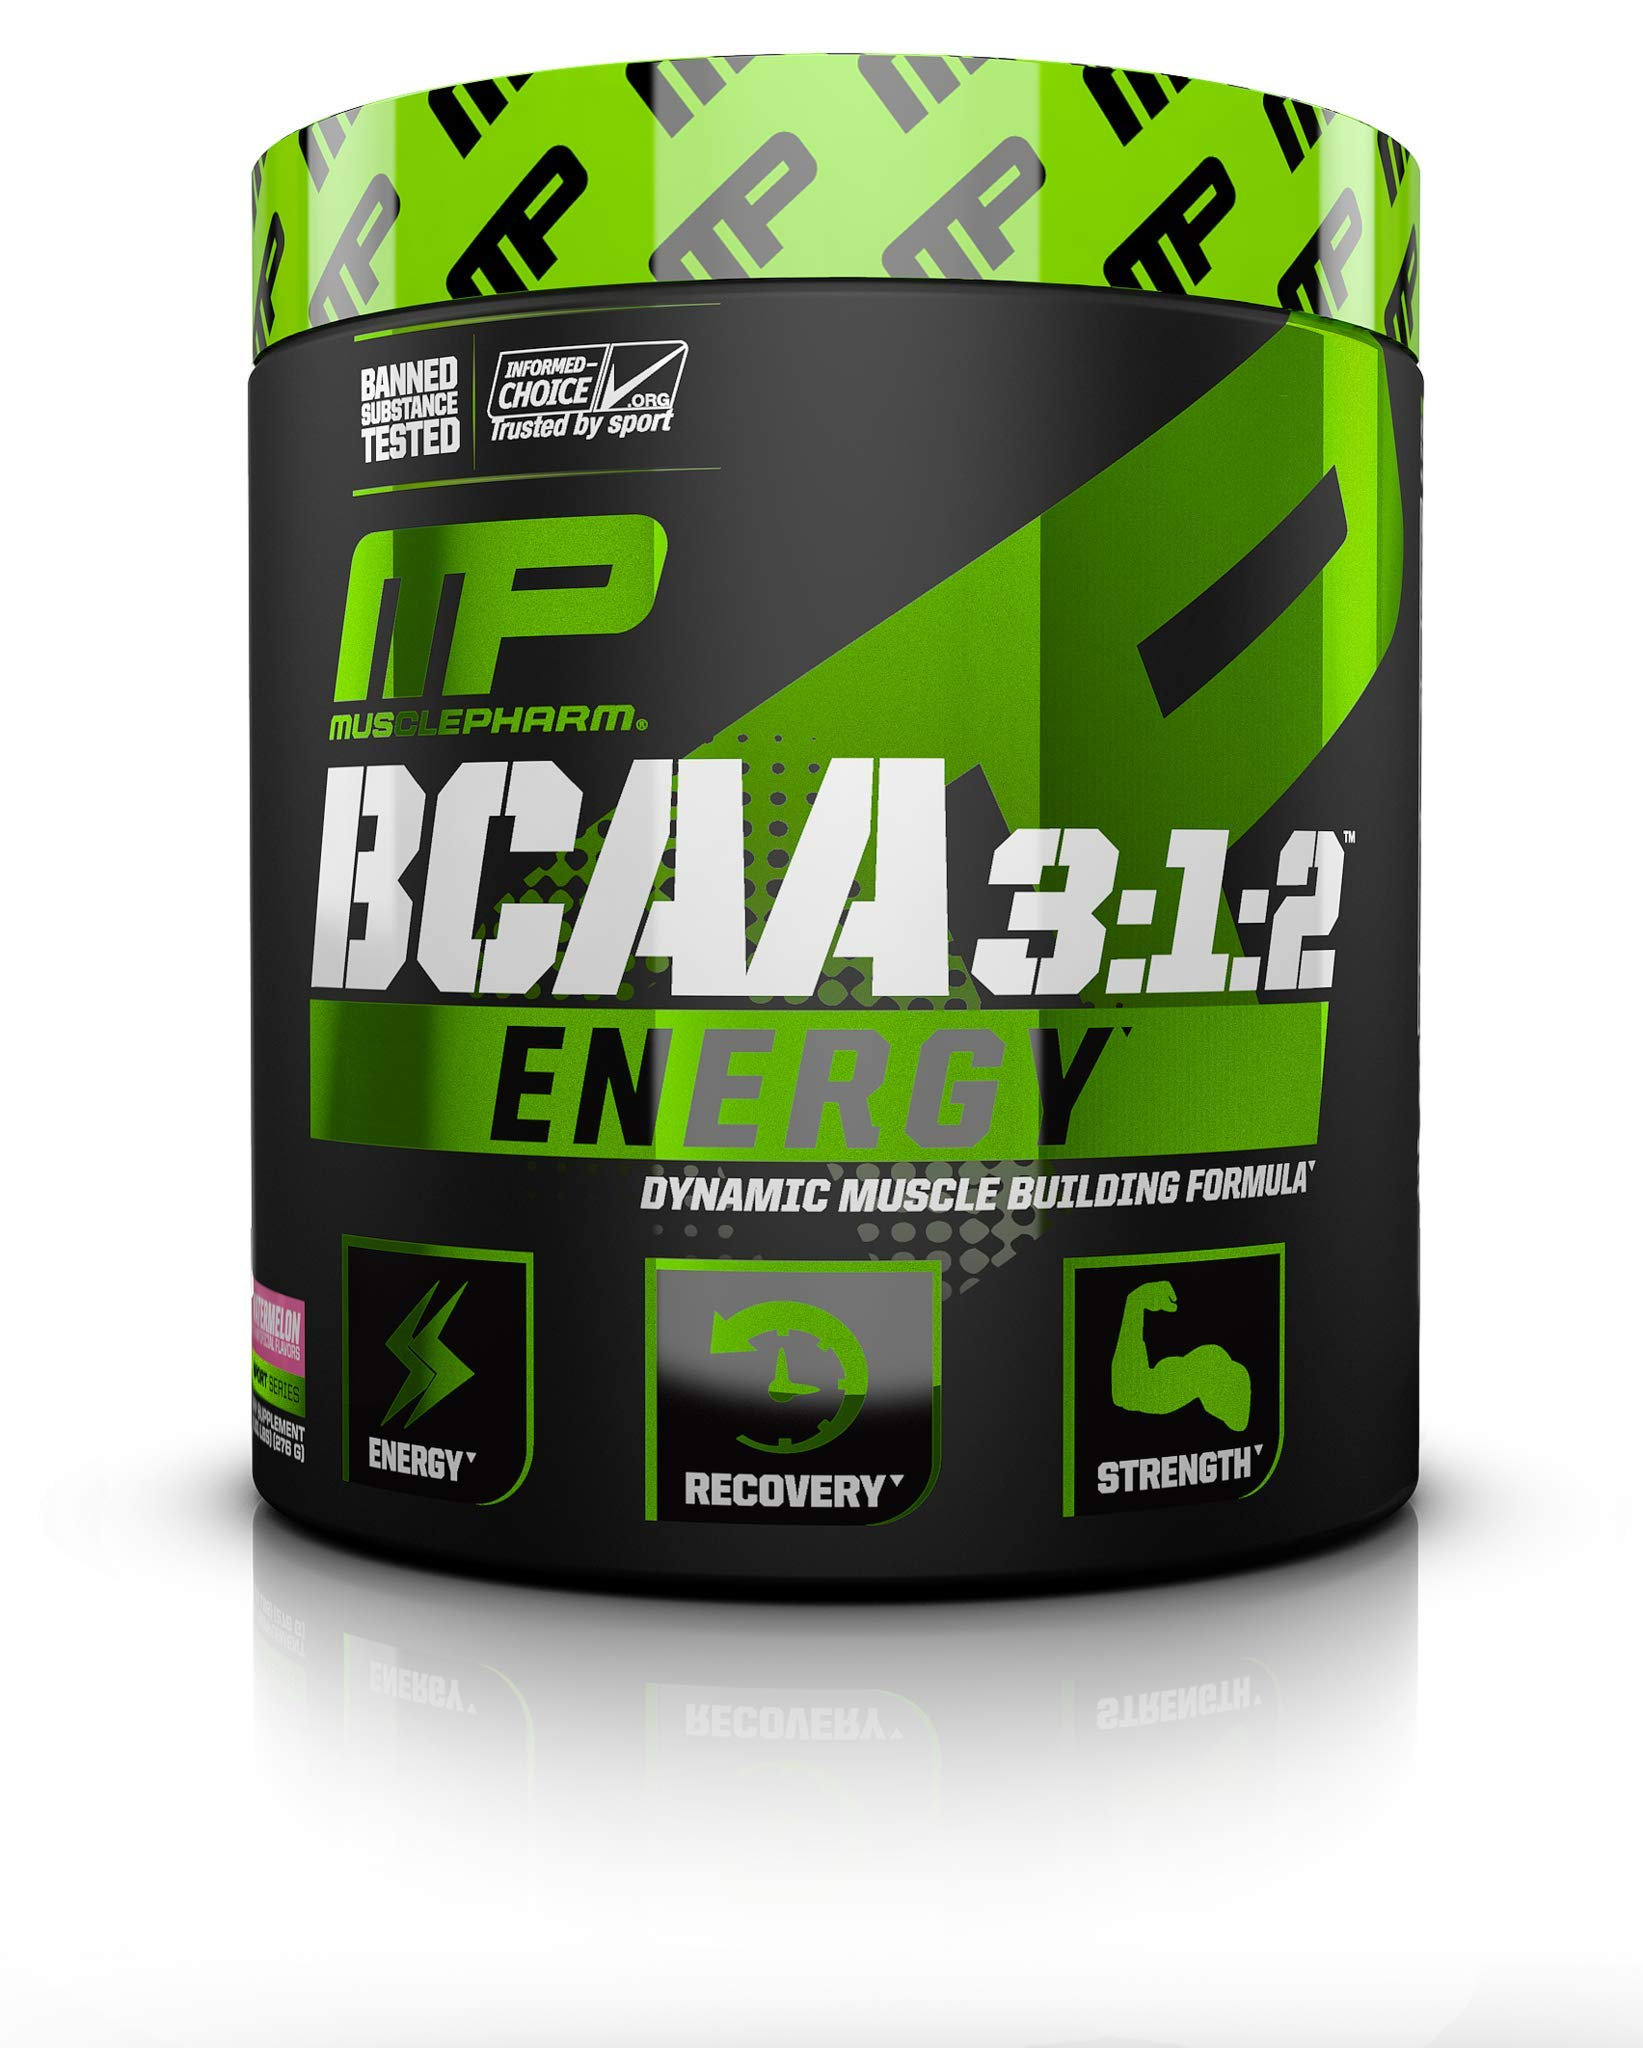 MusclePharm Amino Energy, 6 Grams of BCAA Powder, with Caffeine and Green Tea,